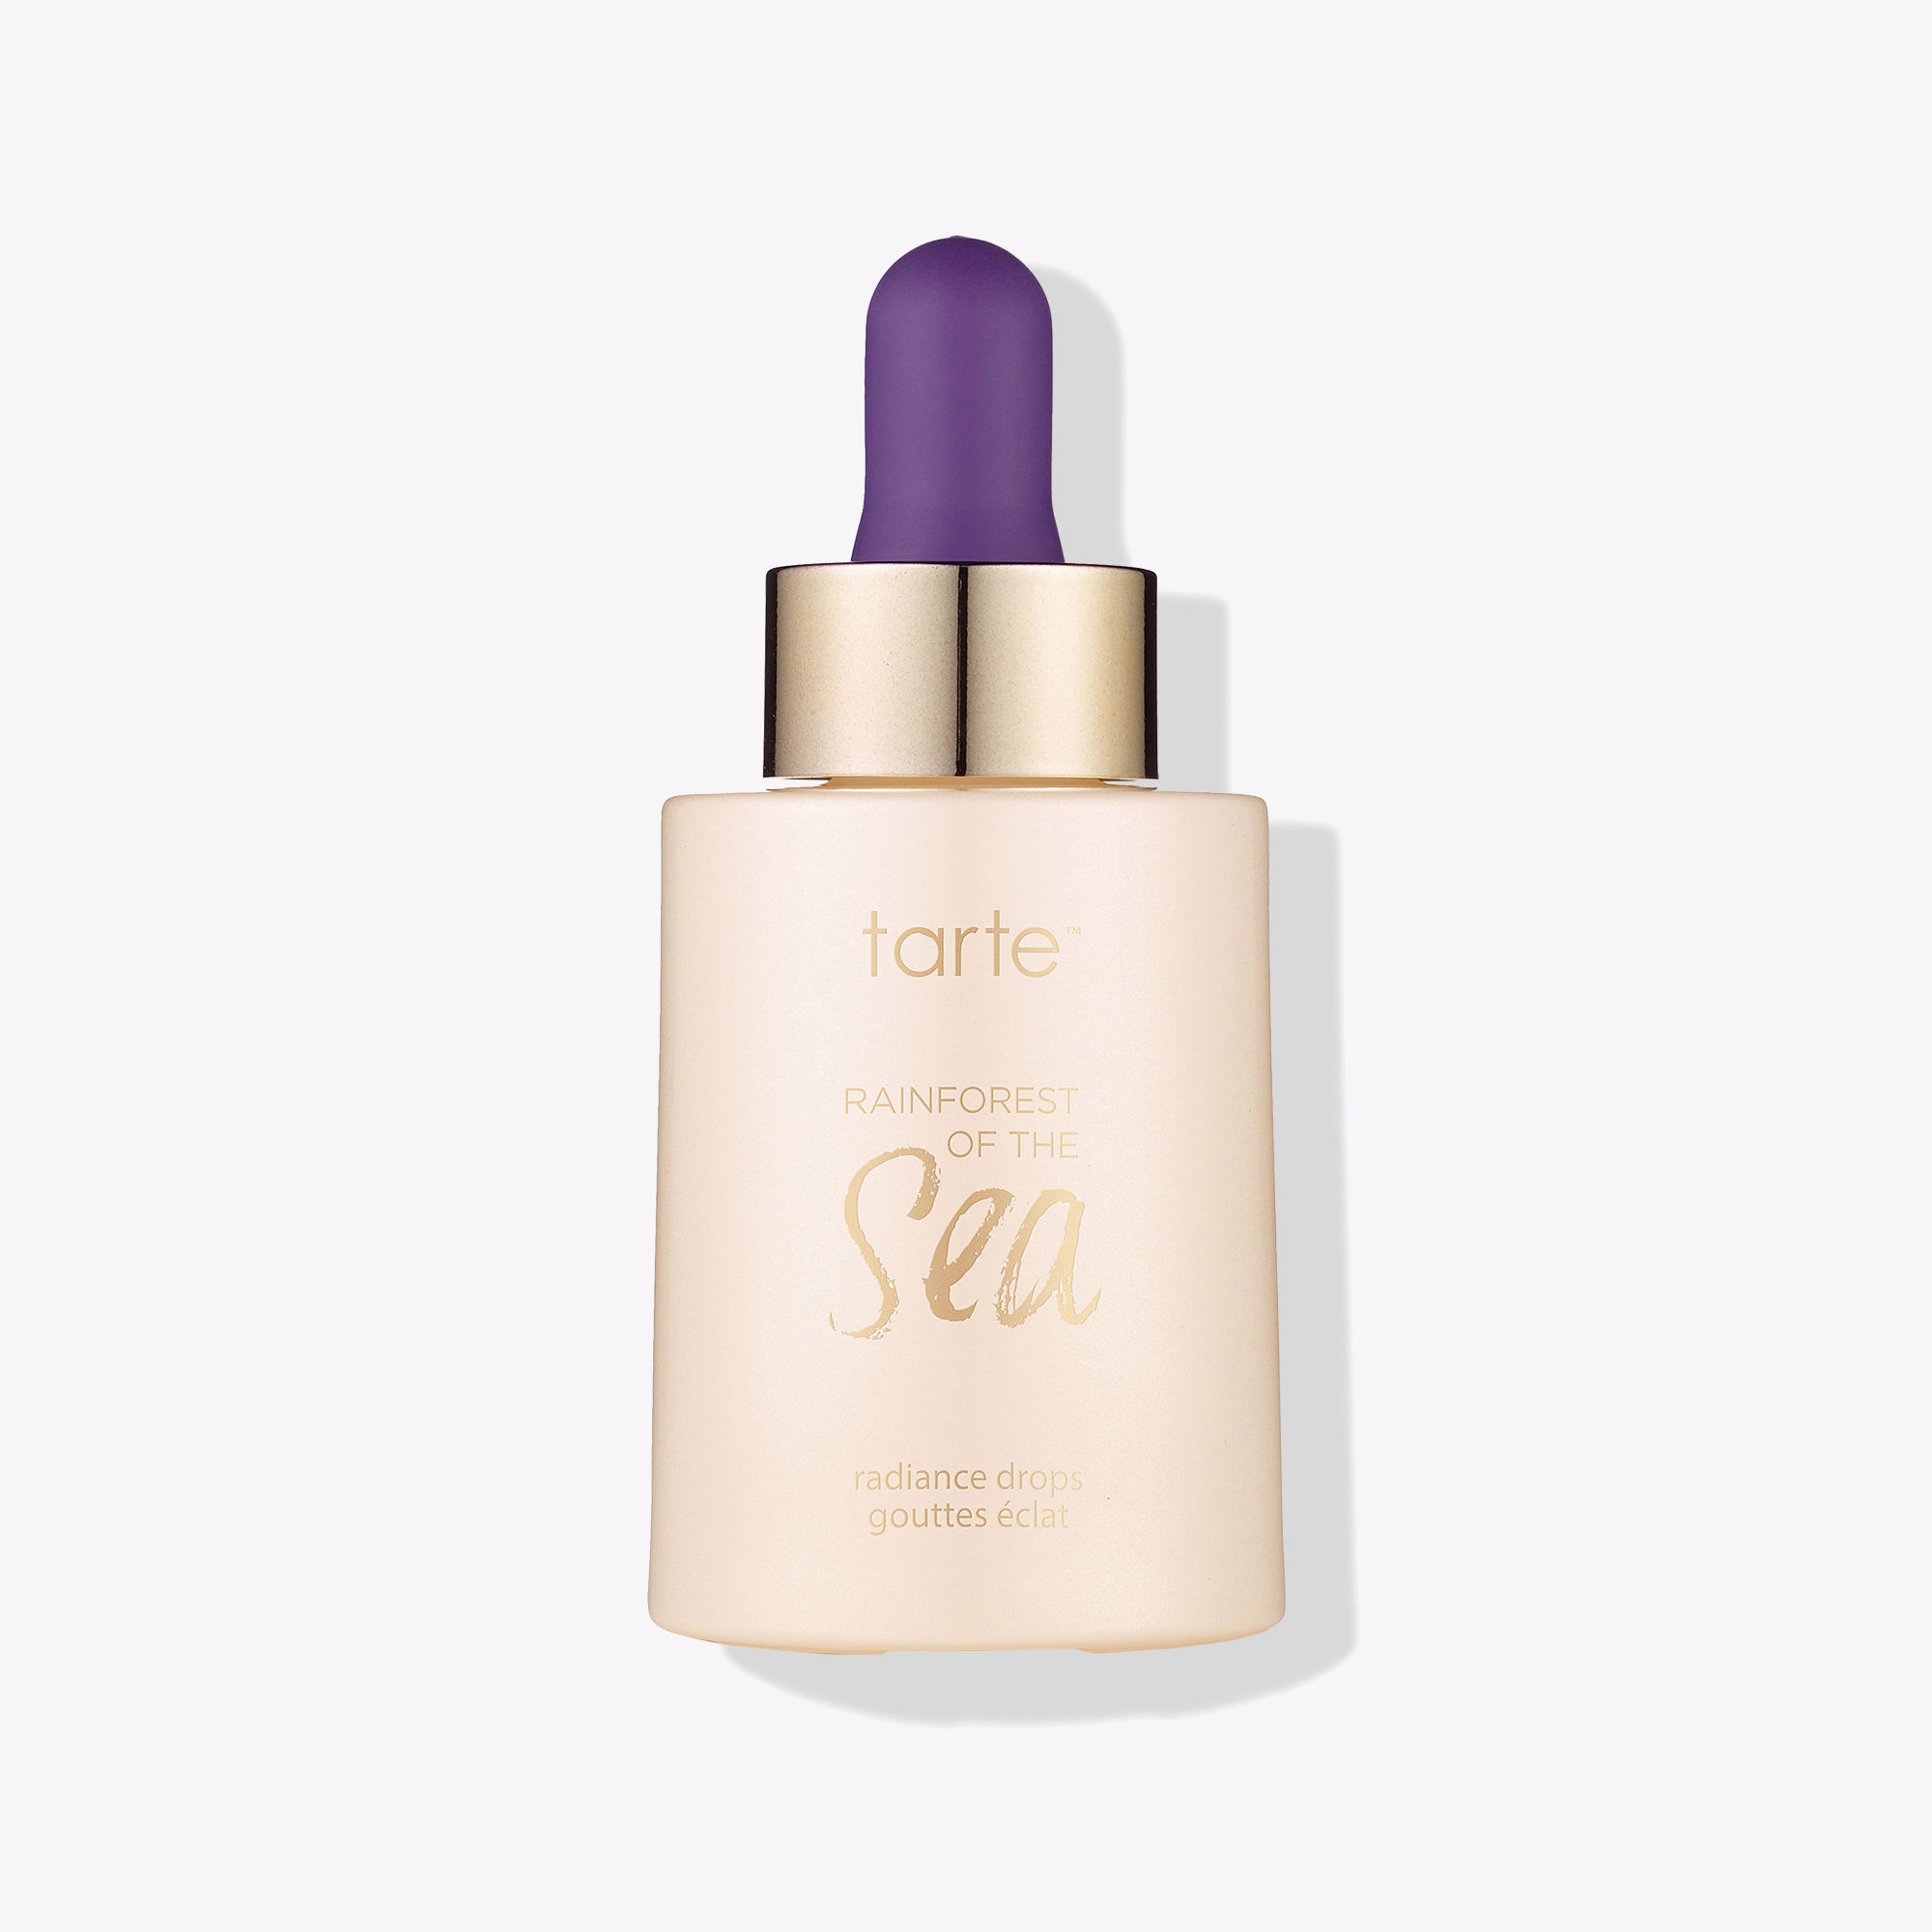 tarte™ Rainforest of the Sea™ radiance drops